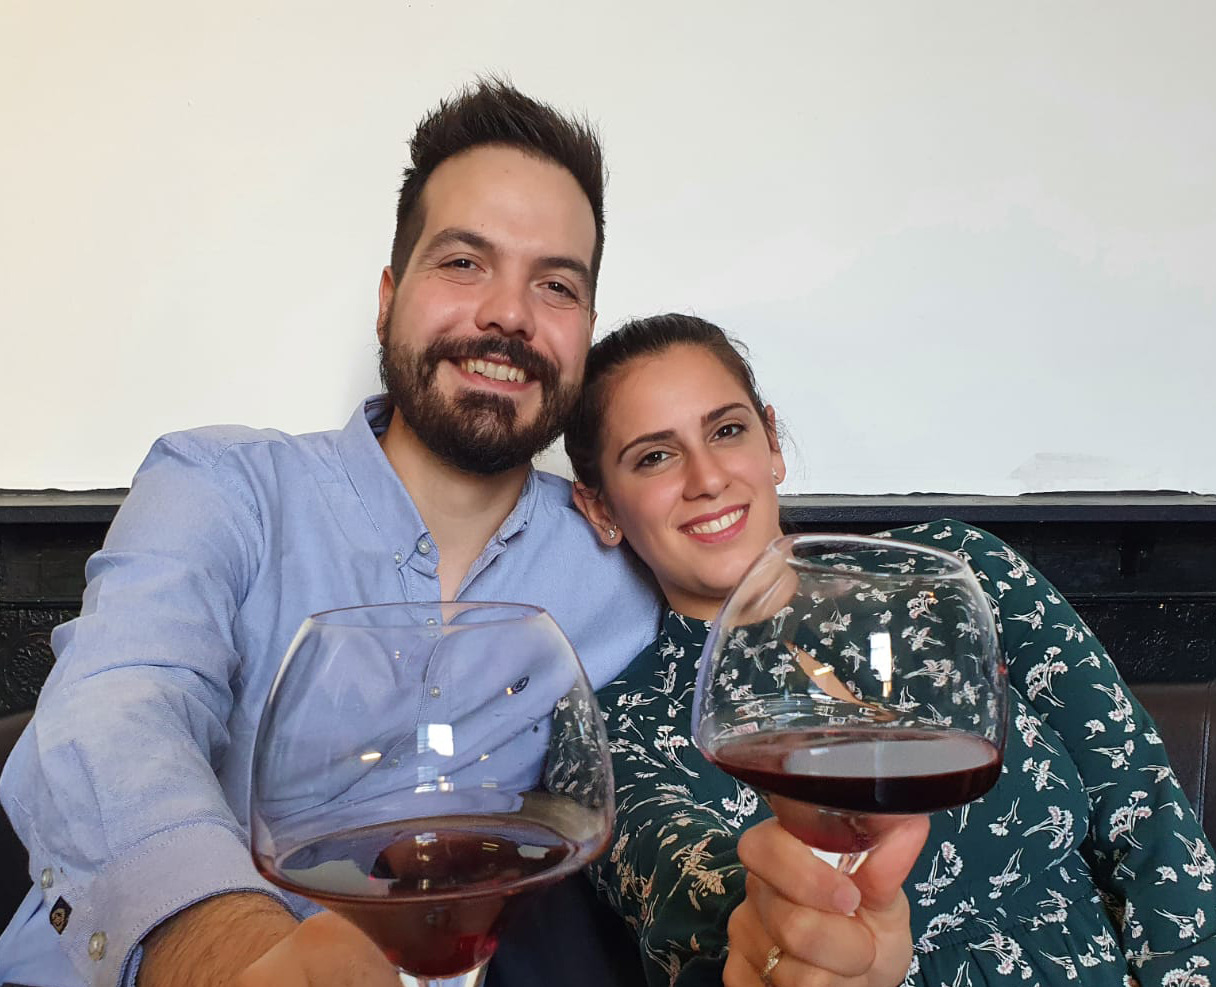 The Italian Wine ltd: Connecting wine lovers with family-run winemakers